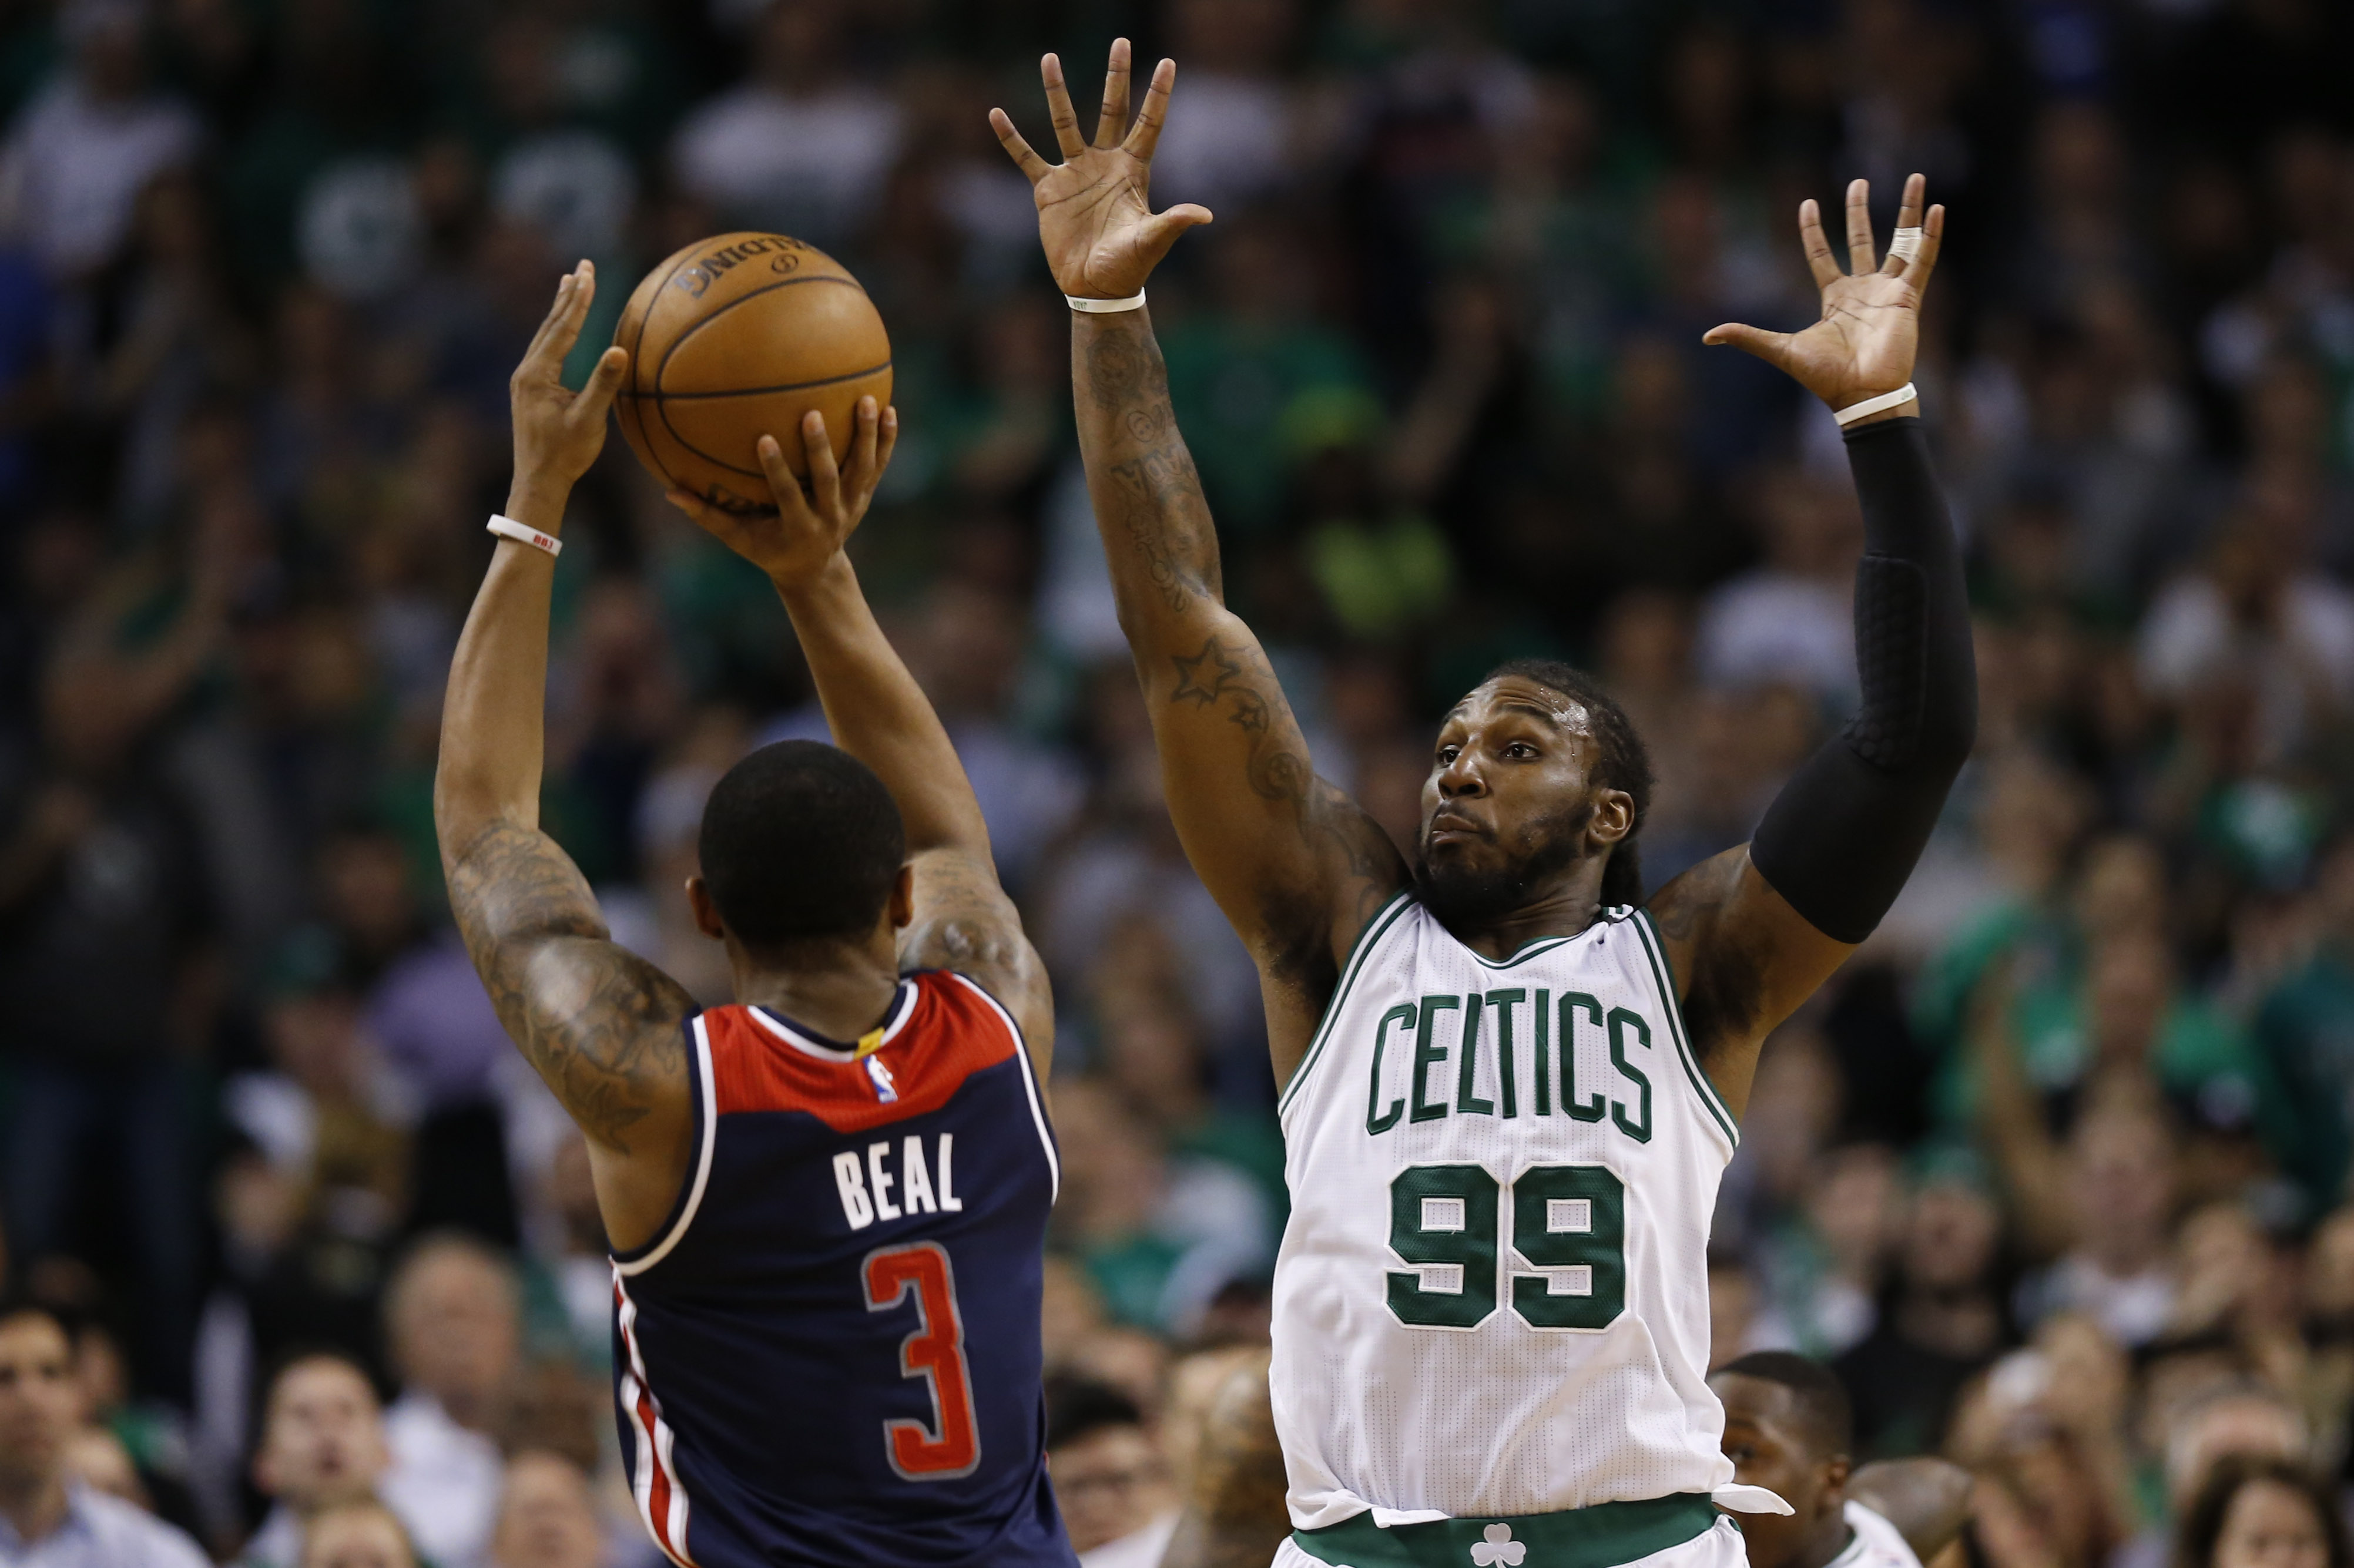 Wizards put up Wall to bring down Celtics in heated playoff